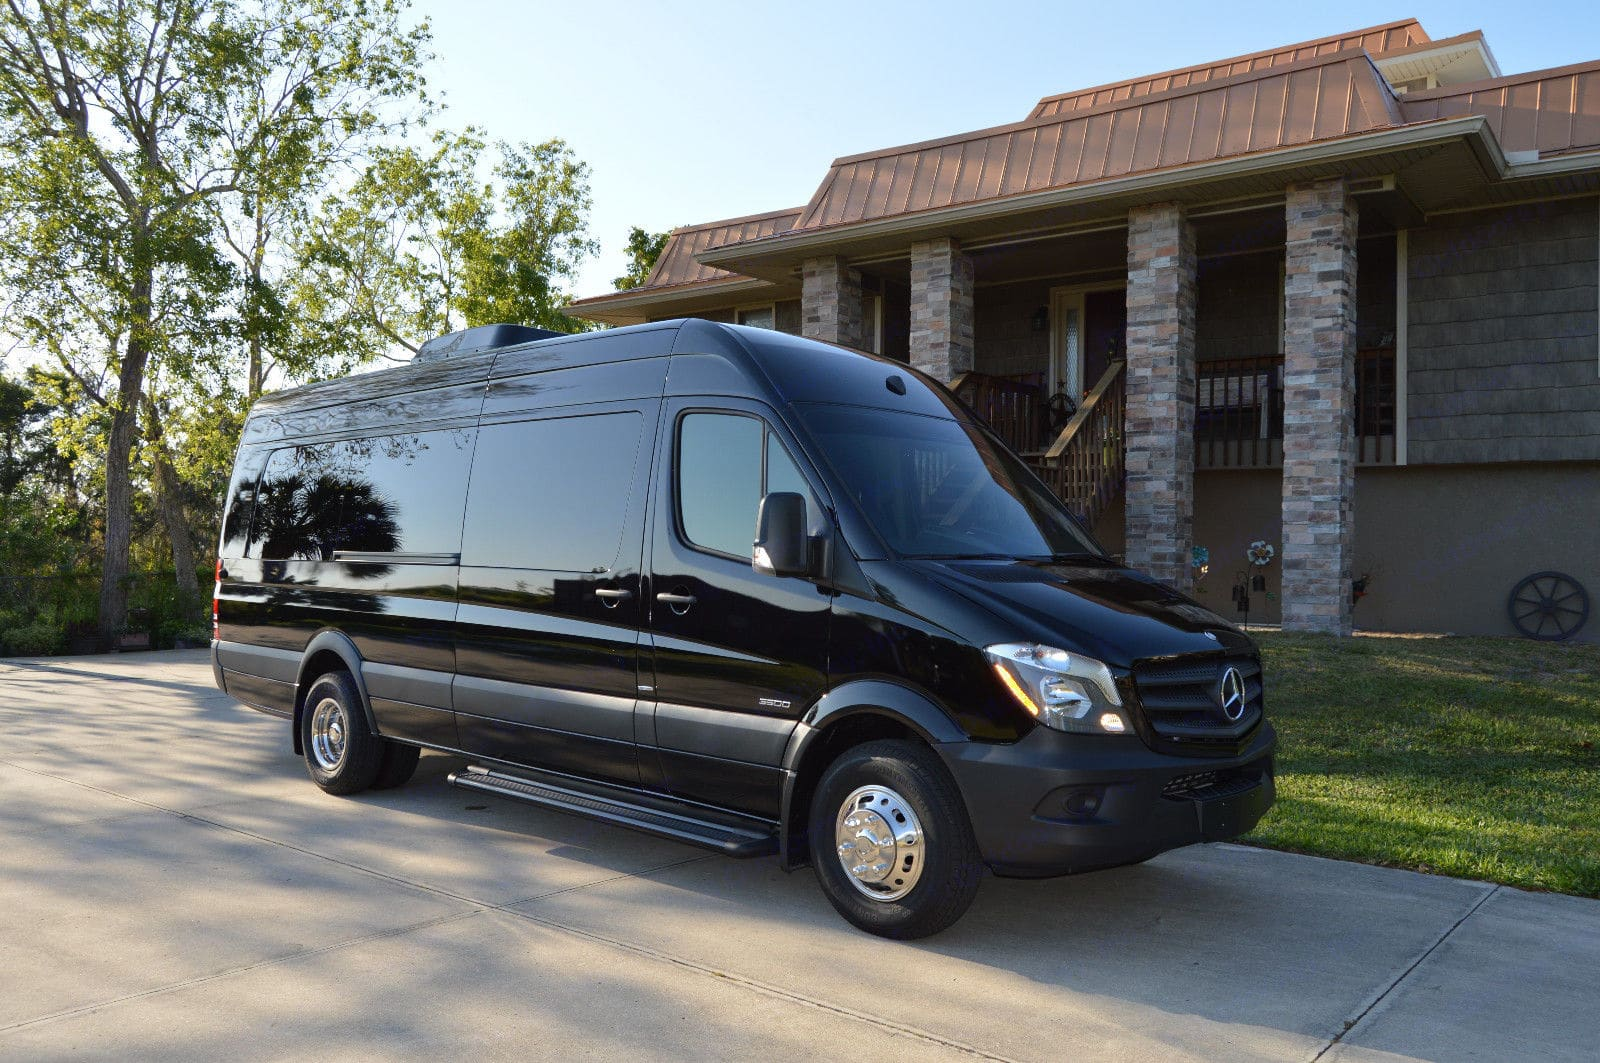 Sleek Limo/RV. Mercedes-Benz Sprinter 170 EXT 3500 2014